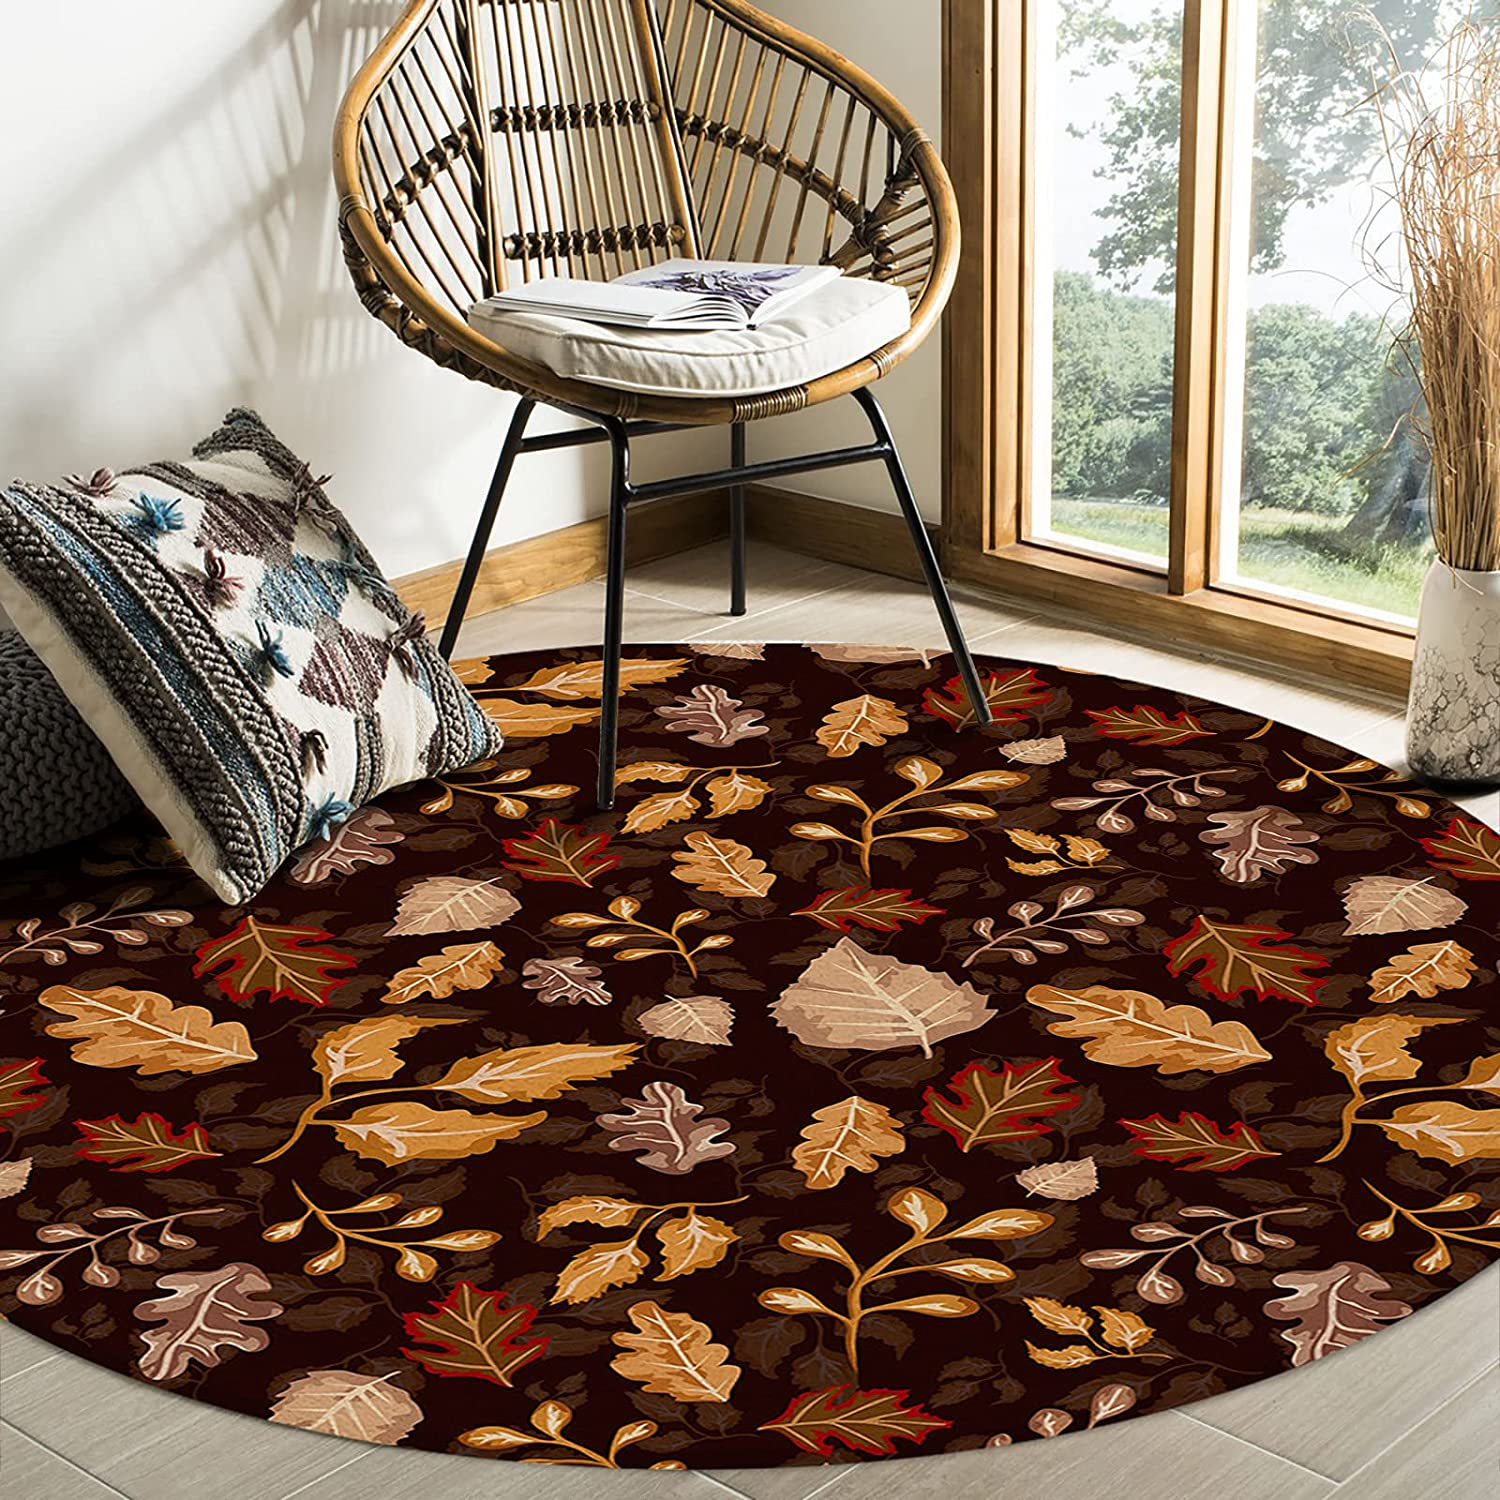 Olivefox Round Area Shipping included New arrival Rugs Thanksgiving Retro Style Maple Tex Leaf